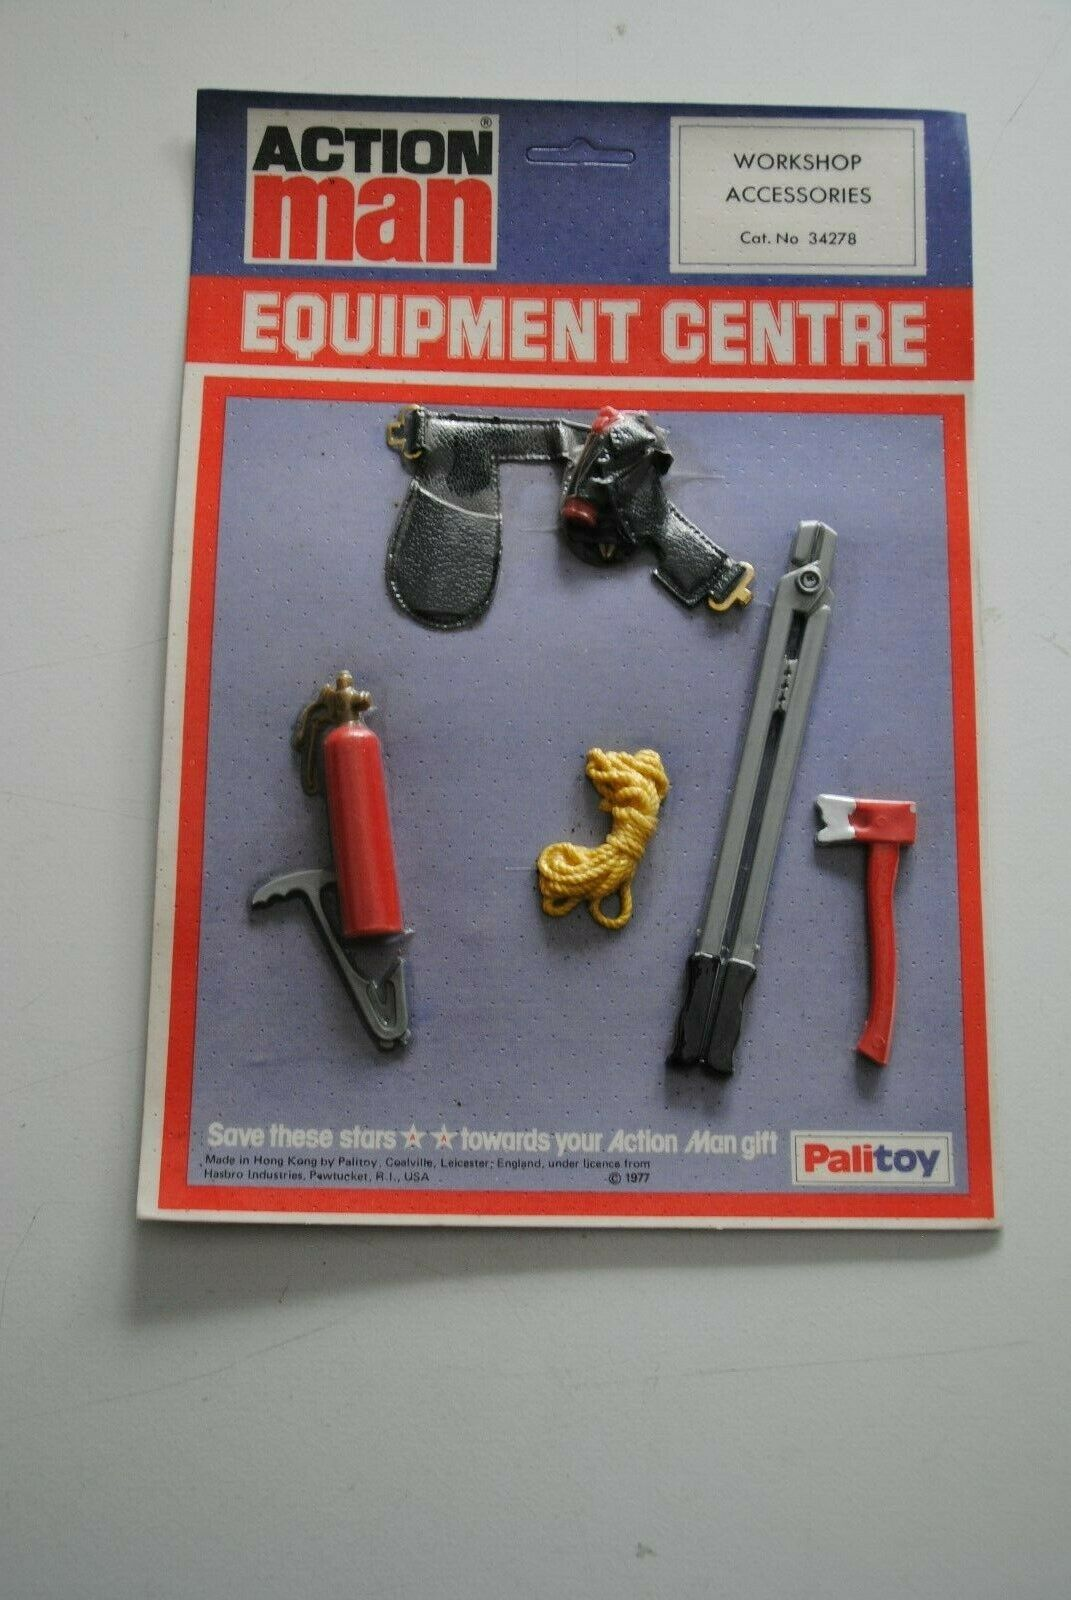 ACTION MAN palitoy GI JOE EQUIPMENT CANTER CARD   WORKSOP ACCESOIRES    RARE